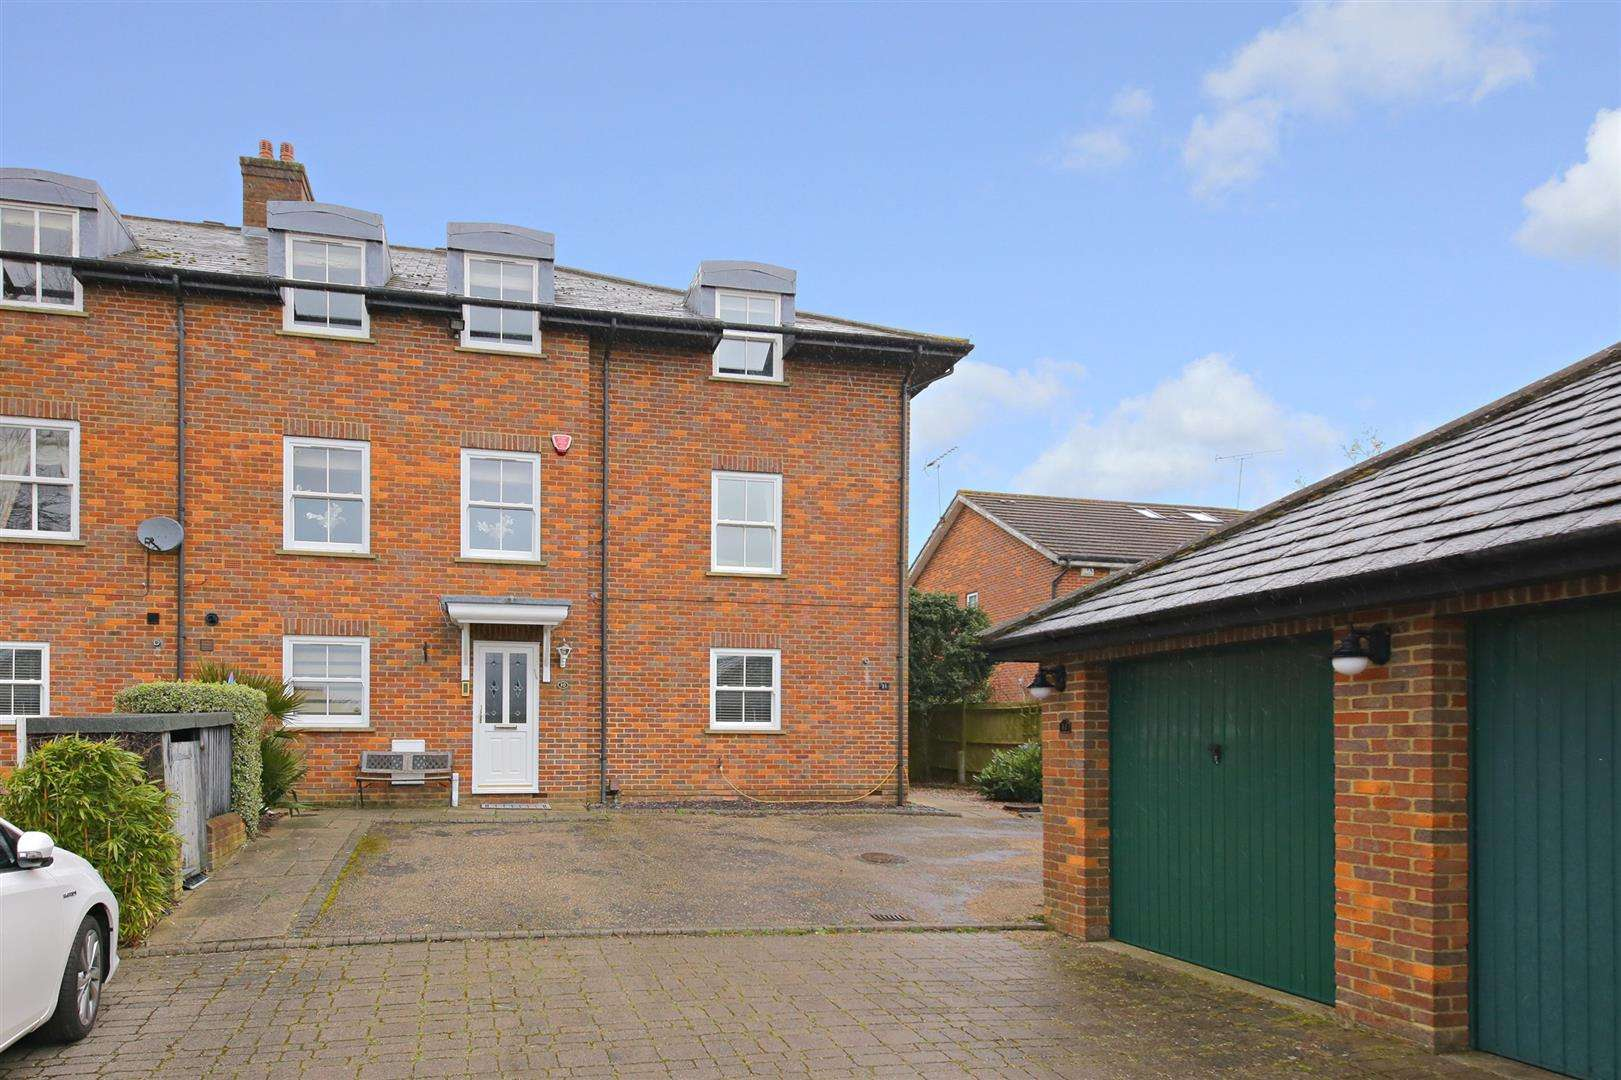 4 bed to rent in Shenley - (Property Image 14)